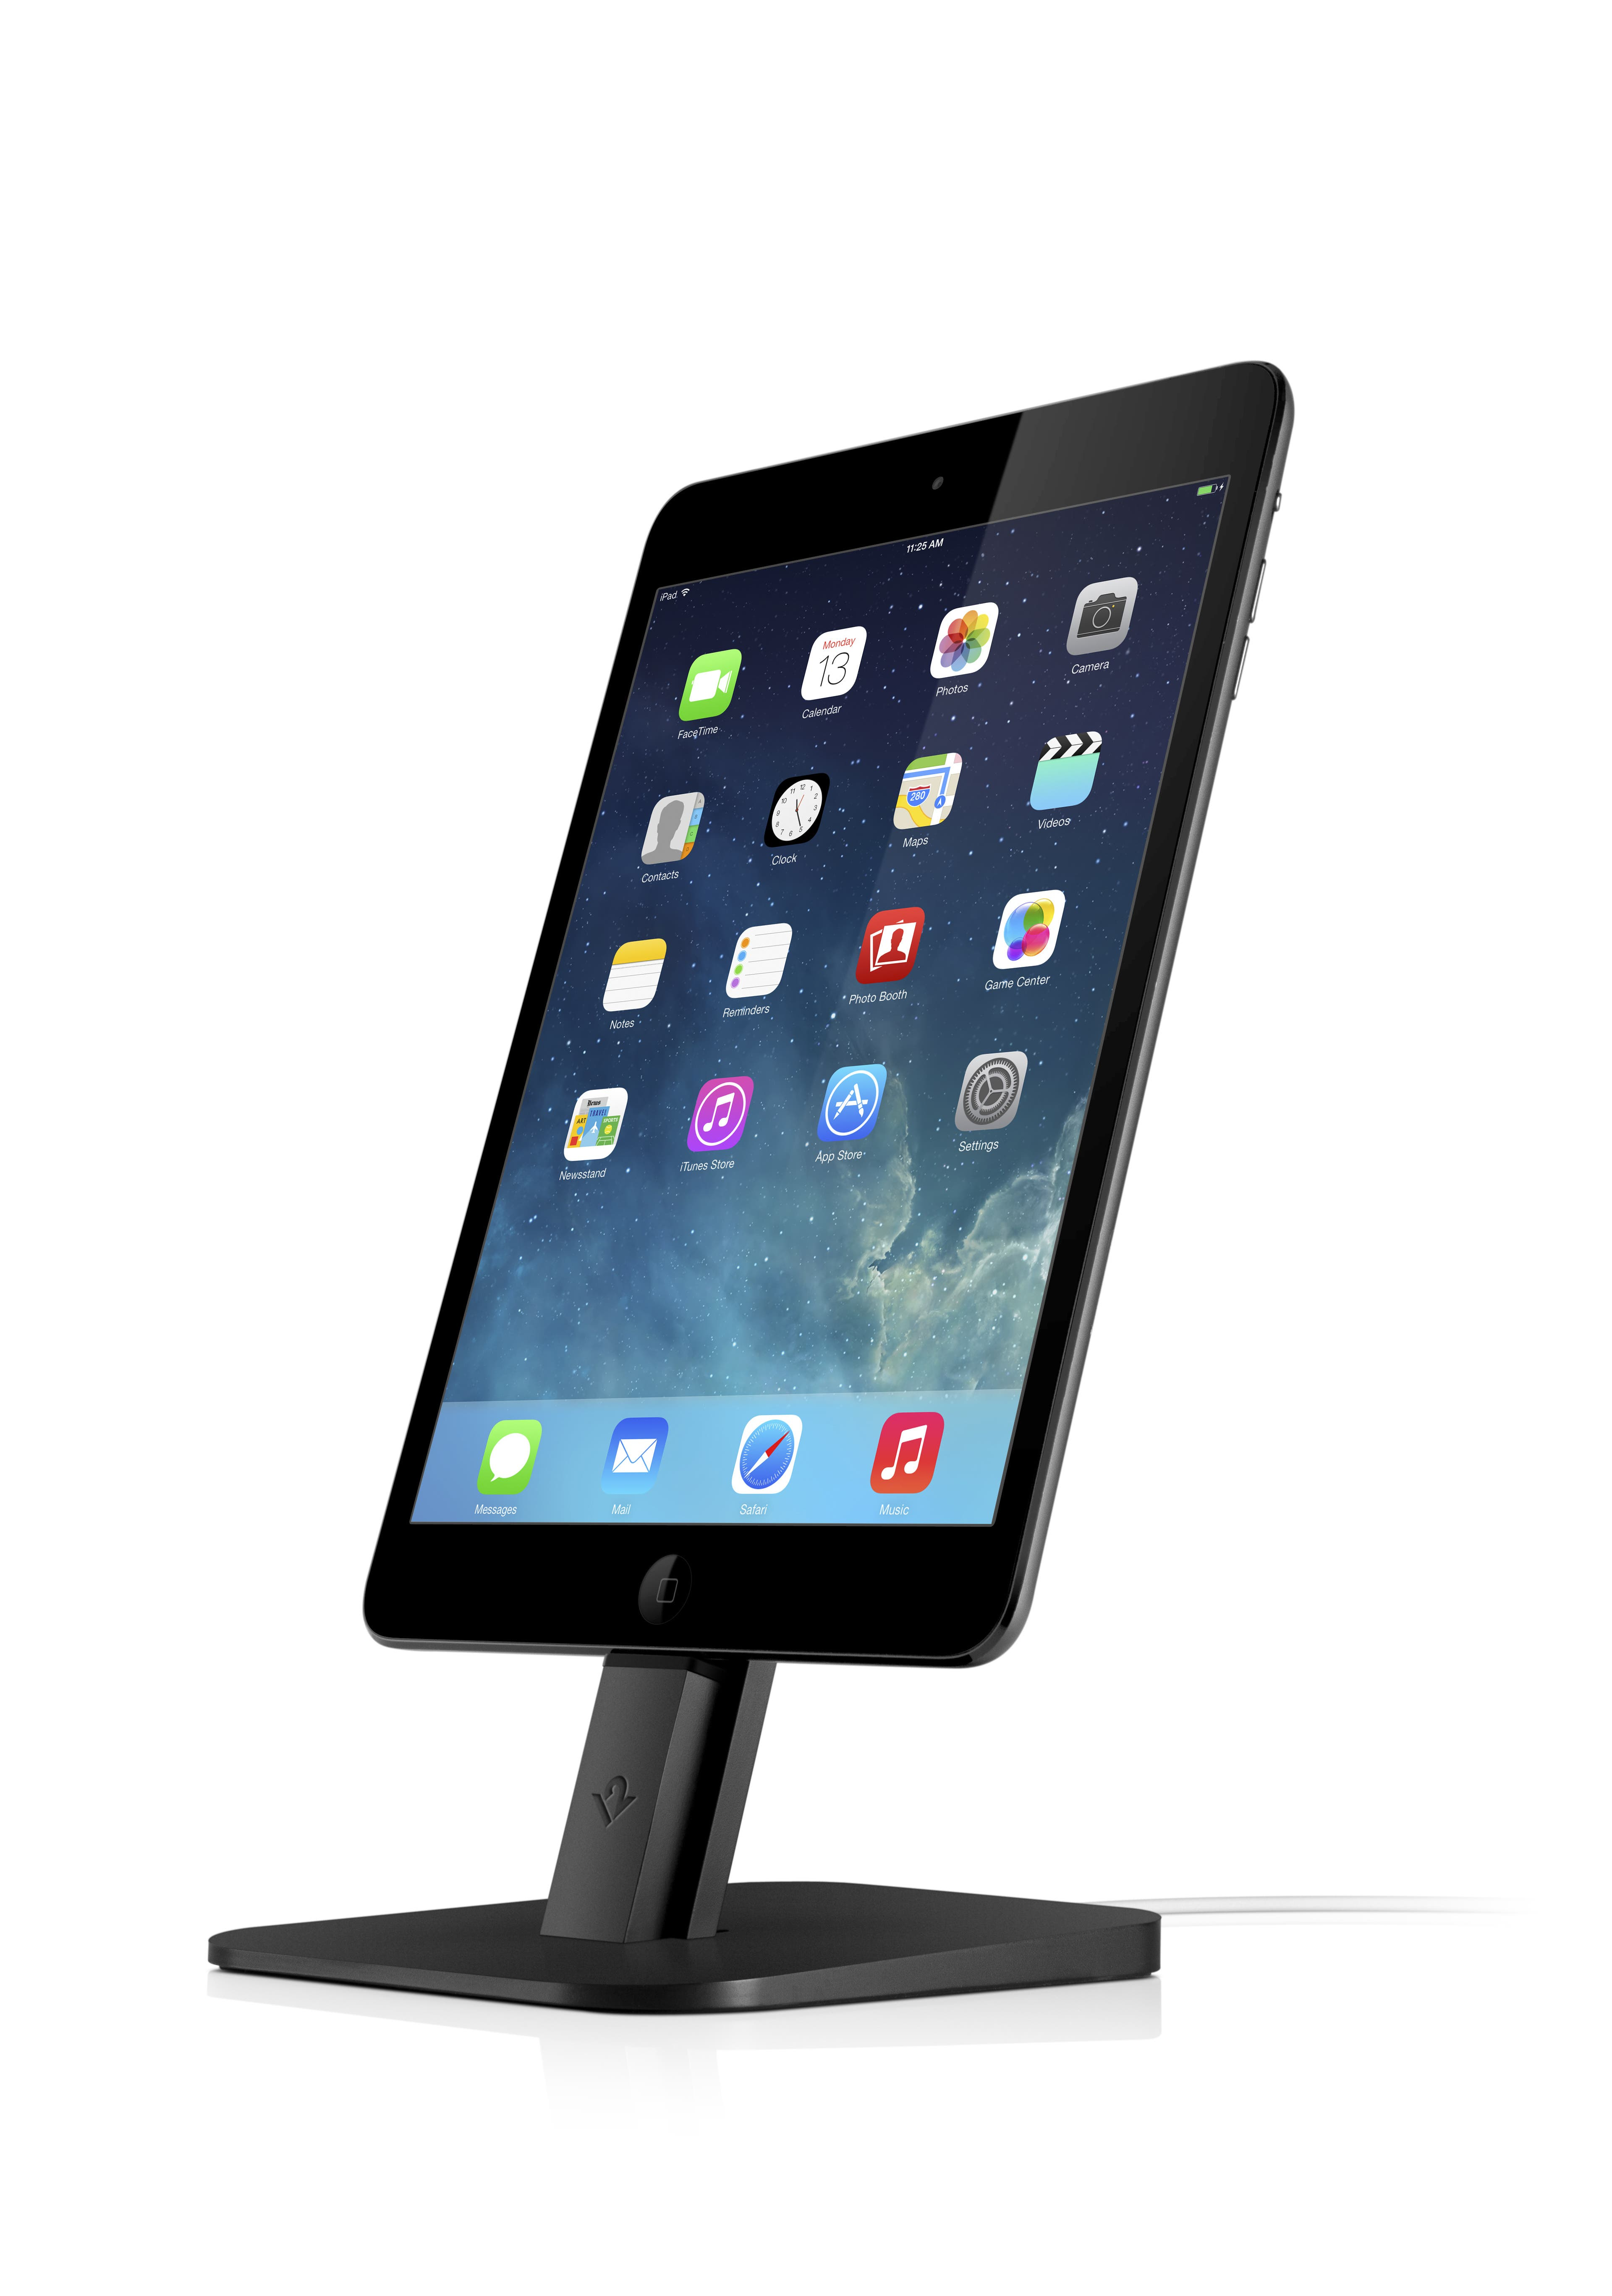 iPad mini im HiRise Black-Dock von twelve south.